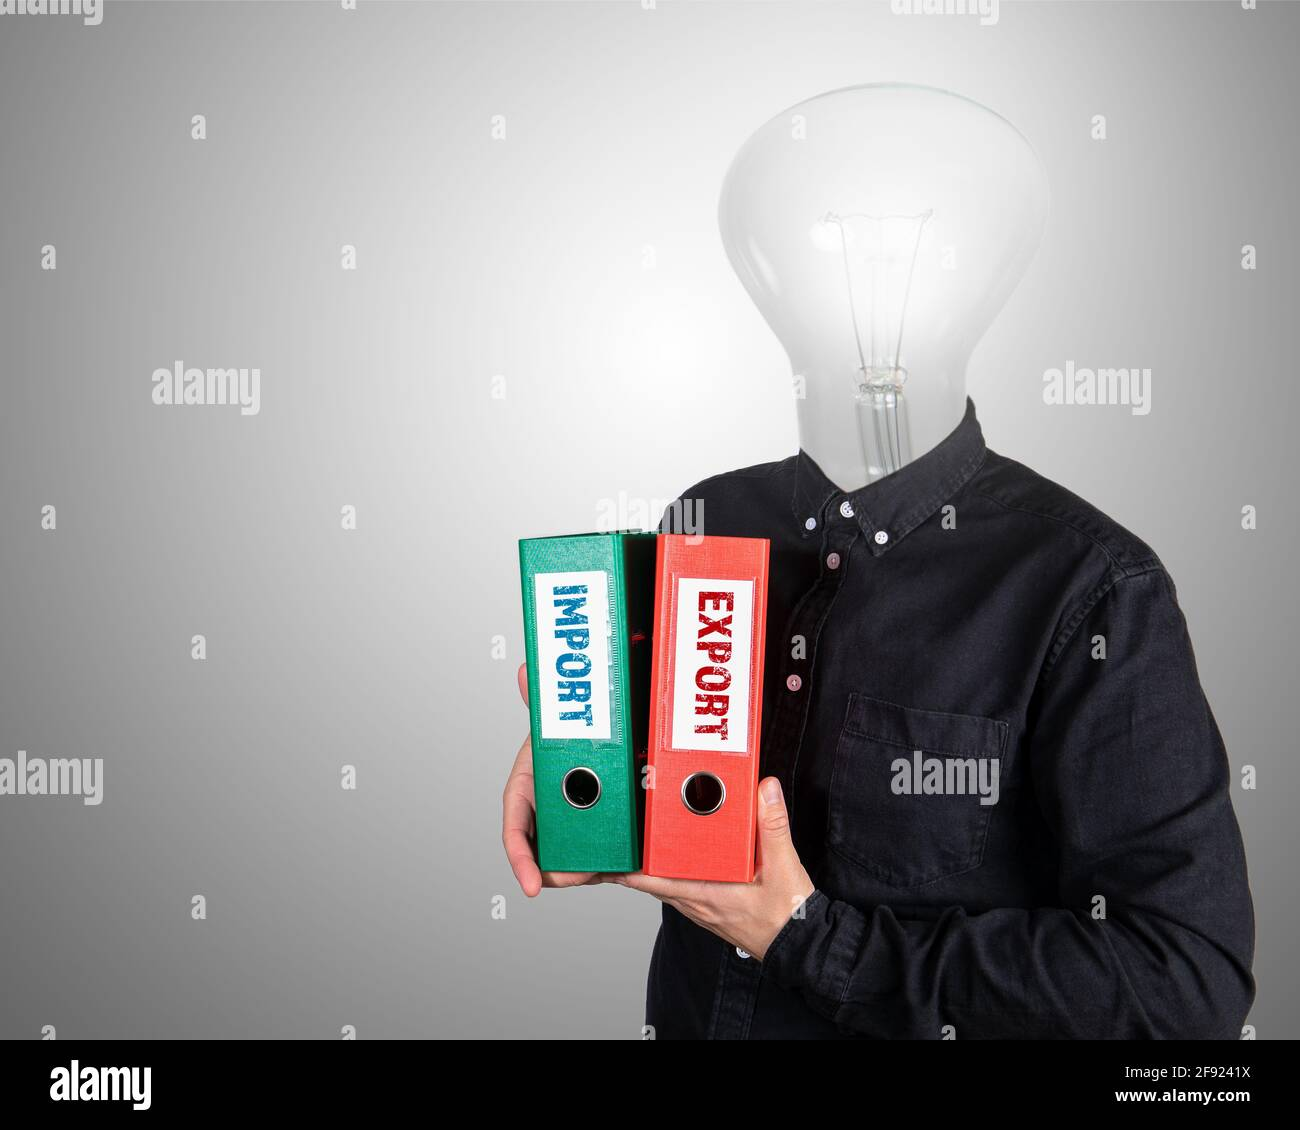 Import and Export concept. Two document folders in a man's hands. Stock Photo